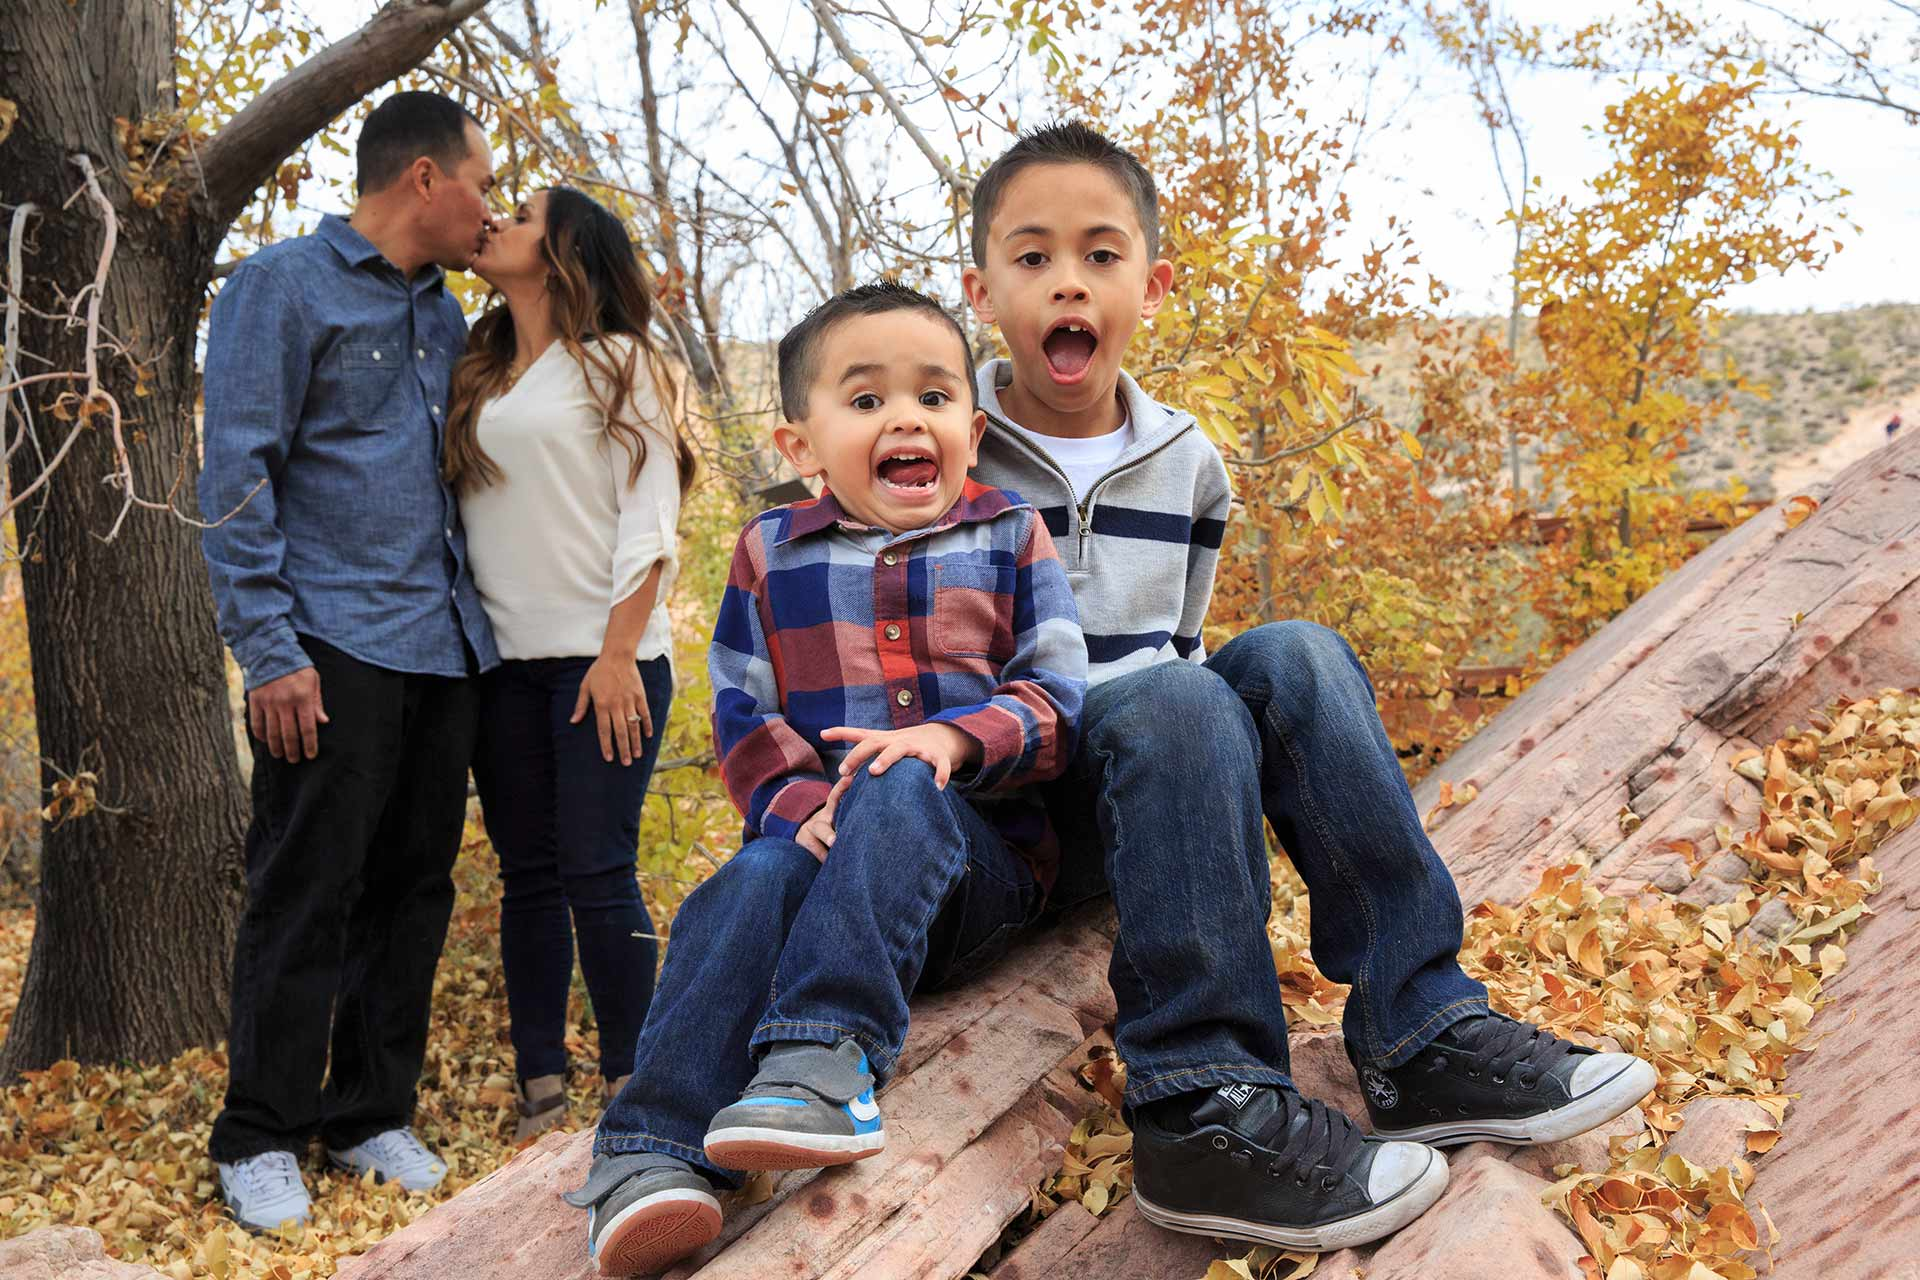 Family Photography At Calico Basin Las Vegas